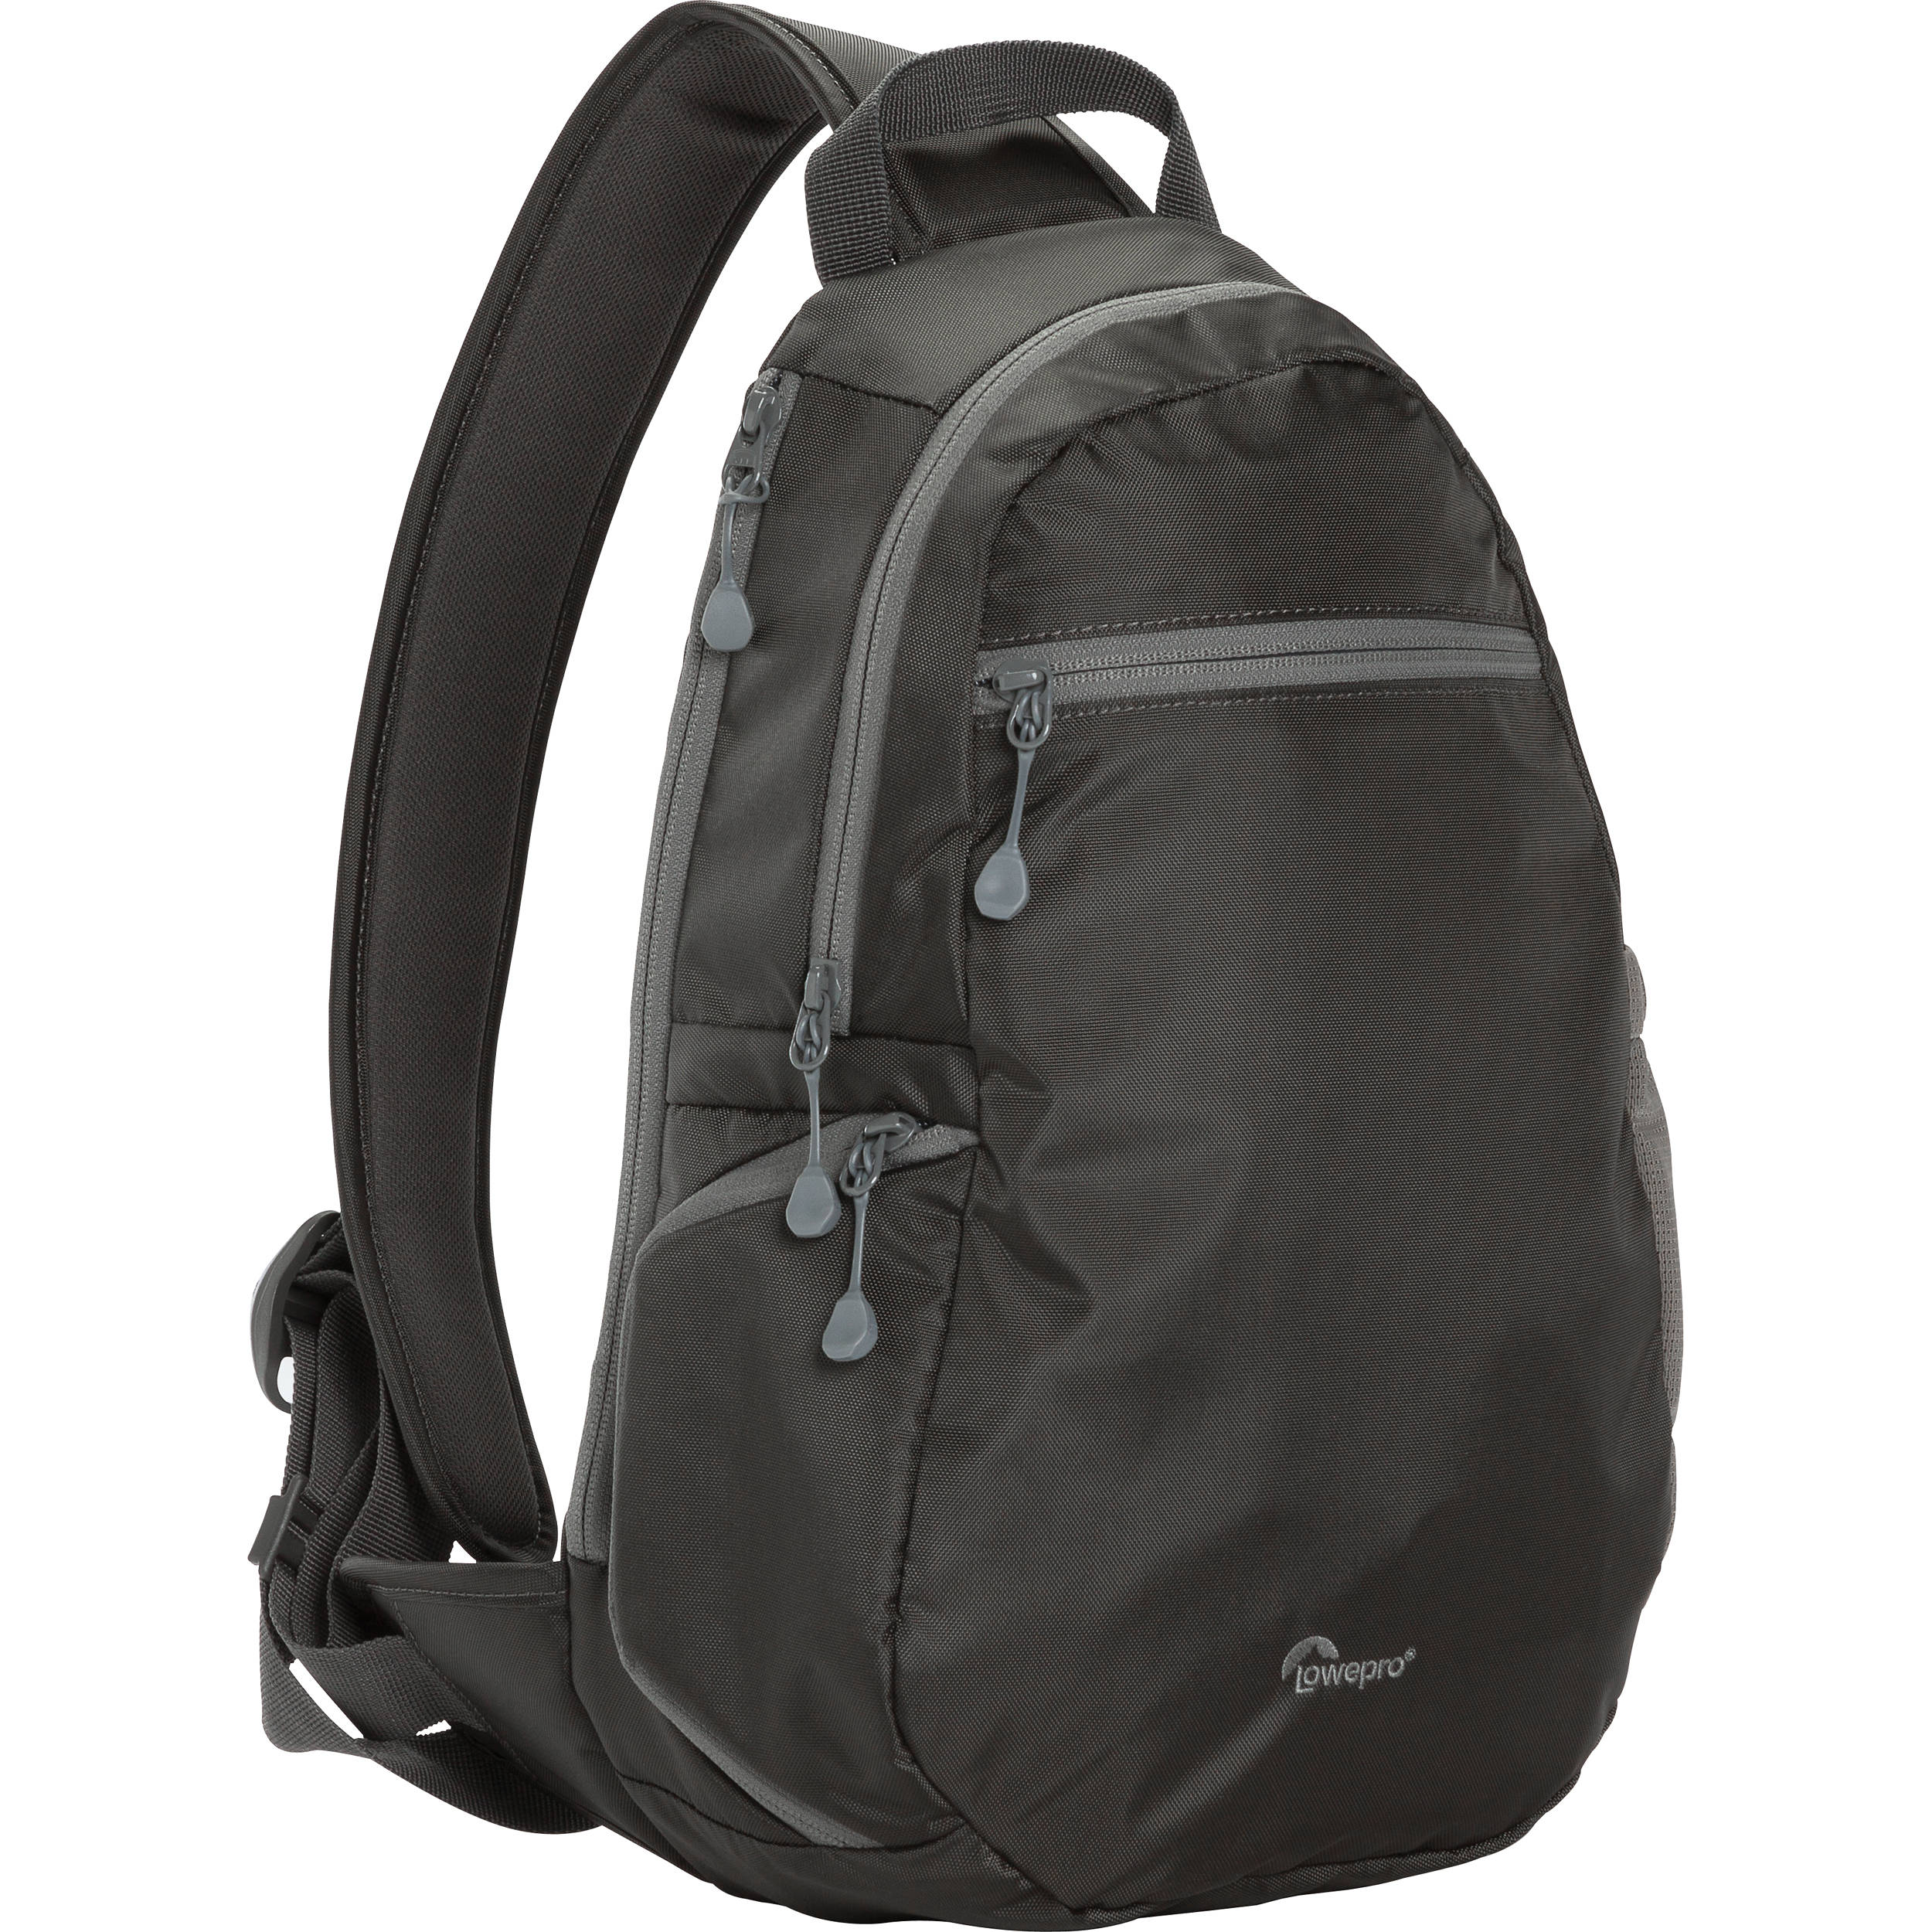 Lowepro StreamLine Sling Bag LP36591 B&H Photo Video